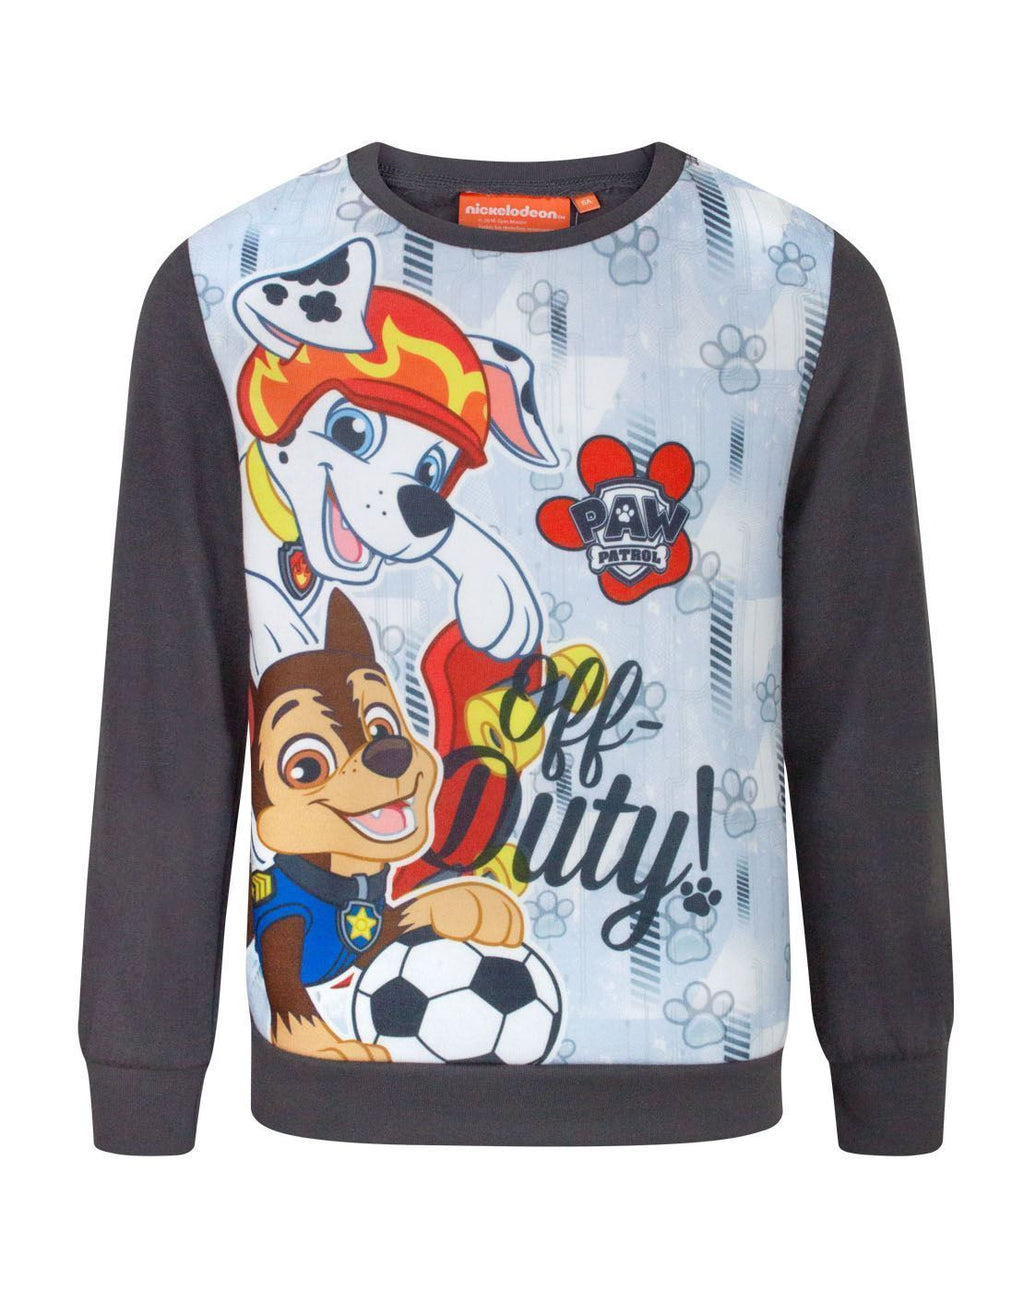 Paw Patrol Off Duty Boy's Sweatshirt